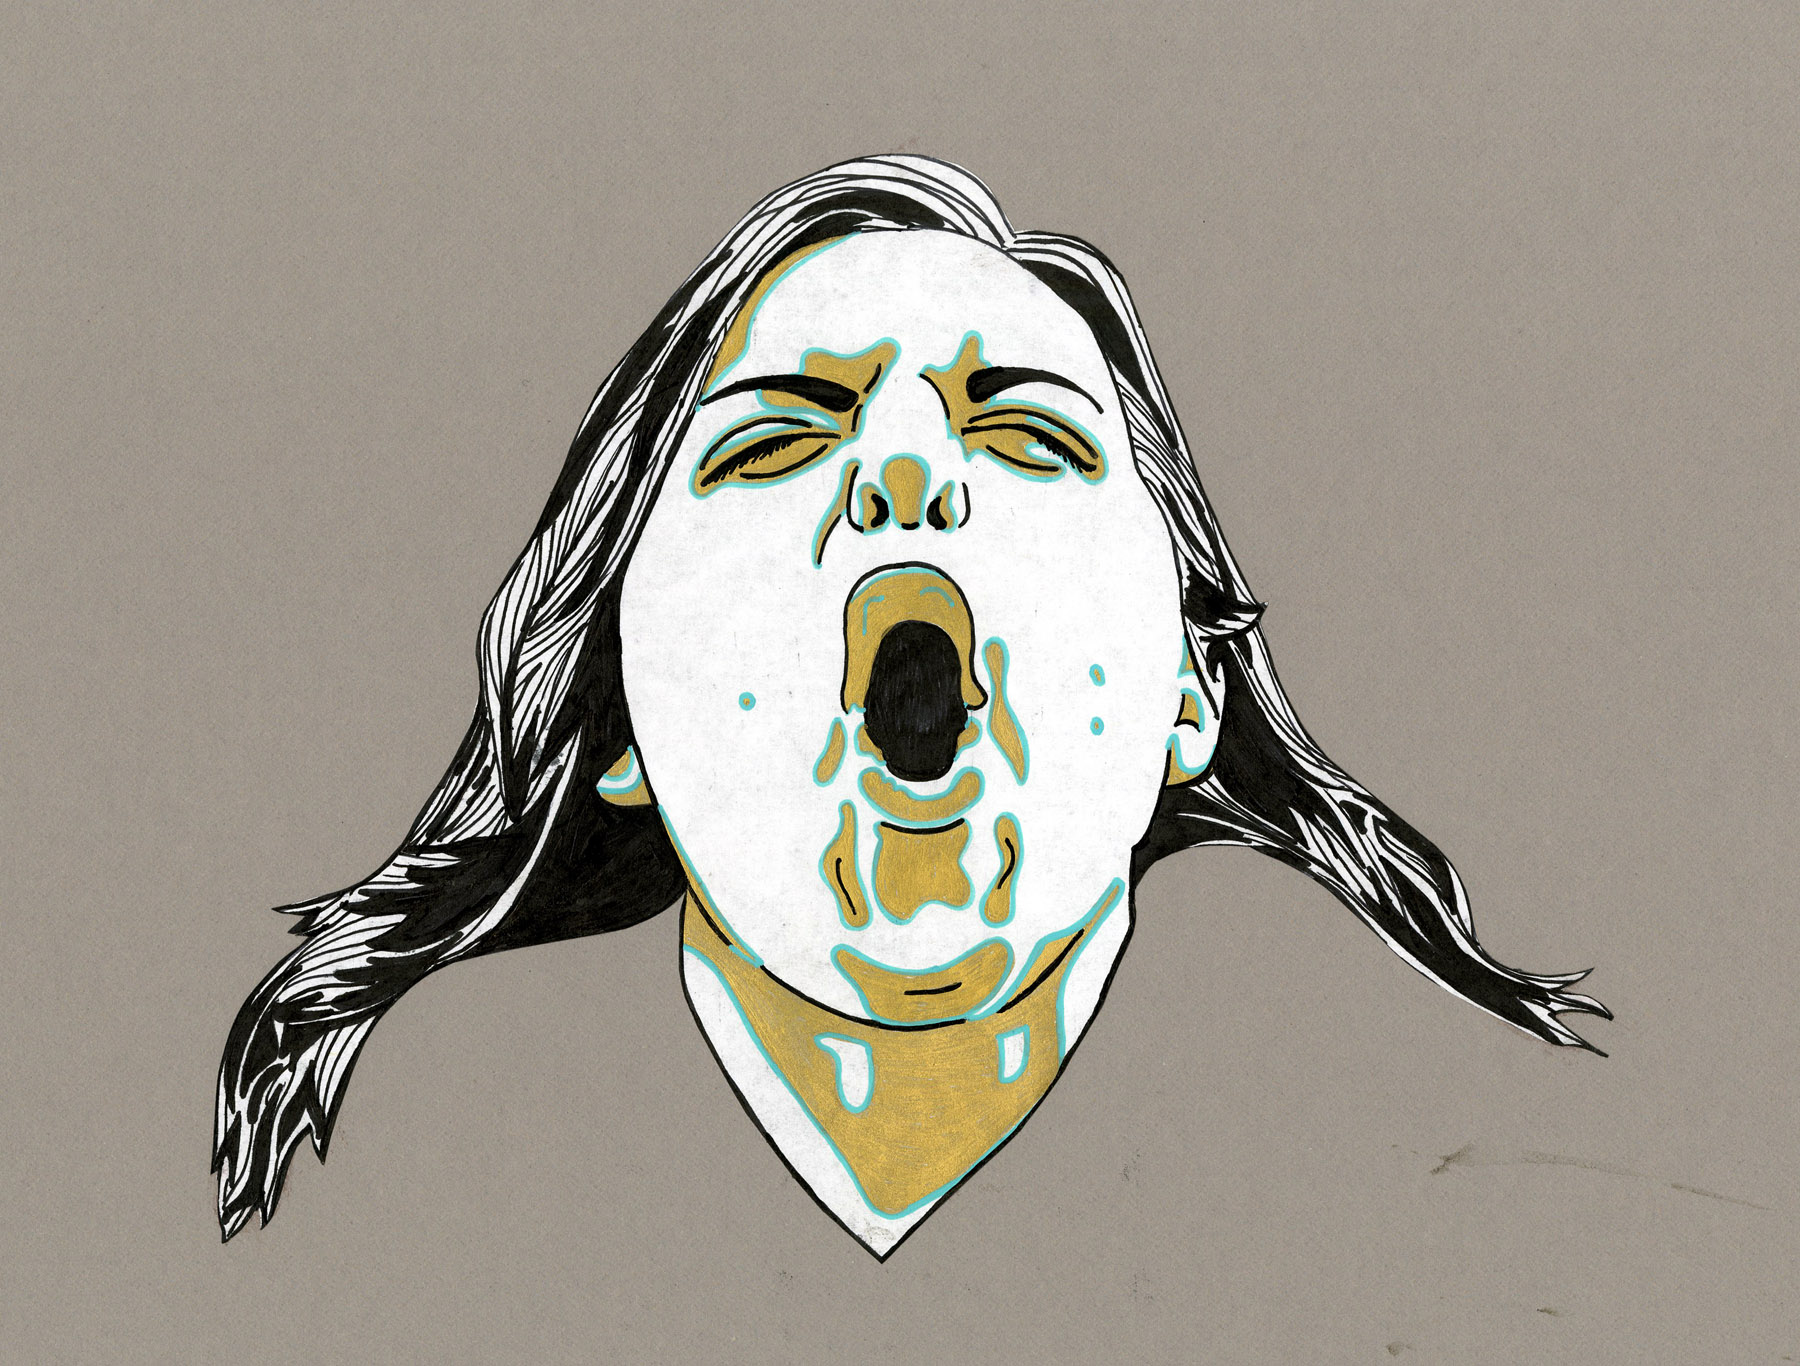 %22Closed Eyes, Open Mouth%22 Maria.jpg